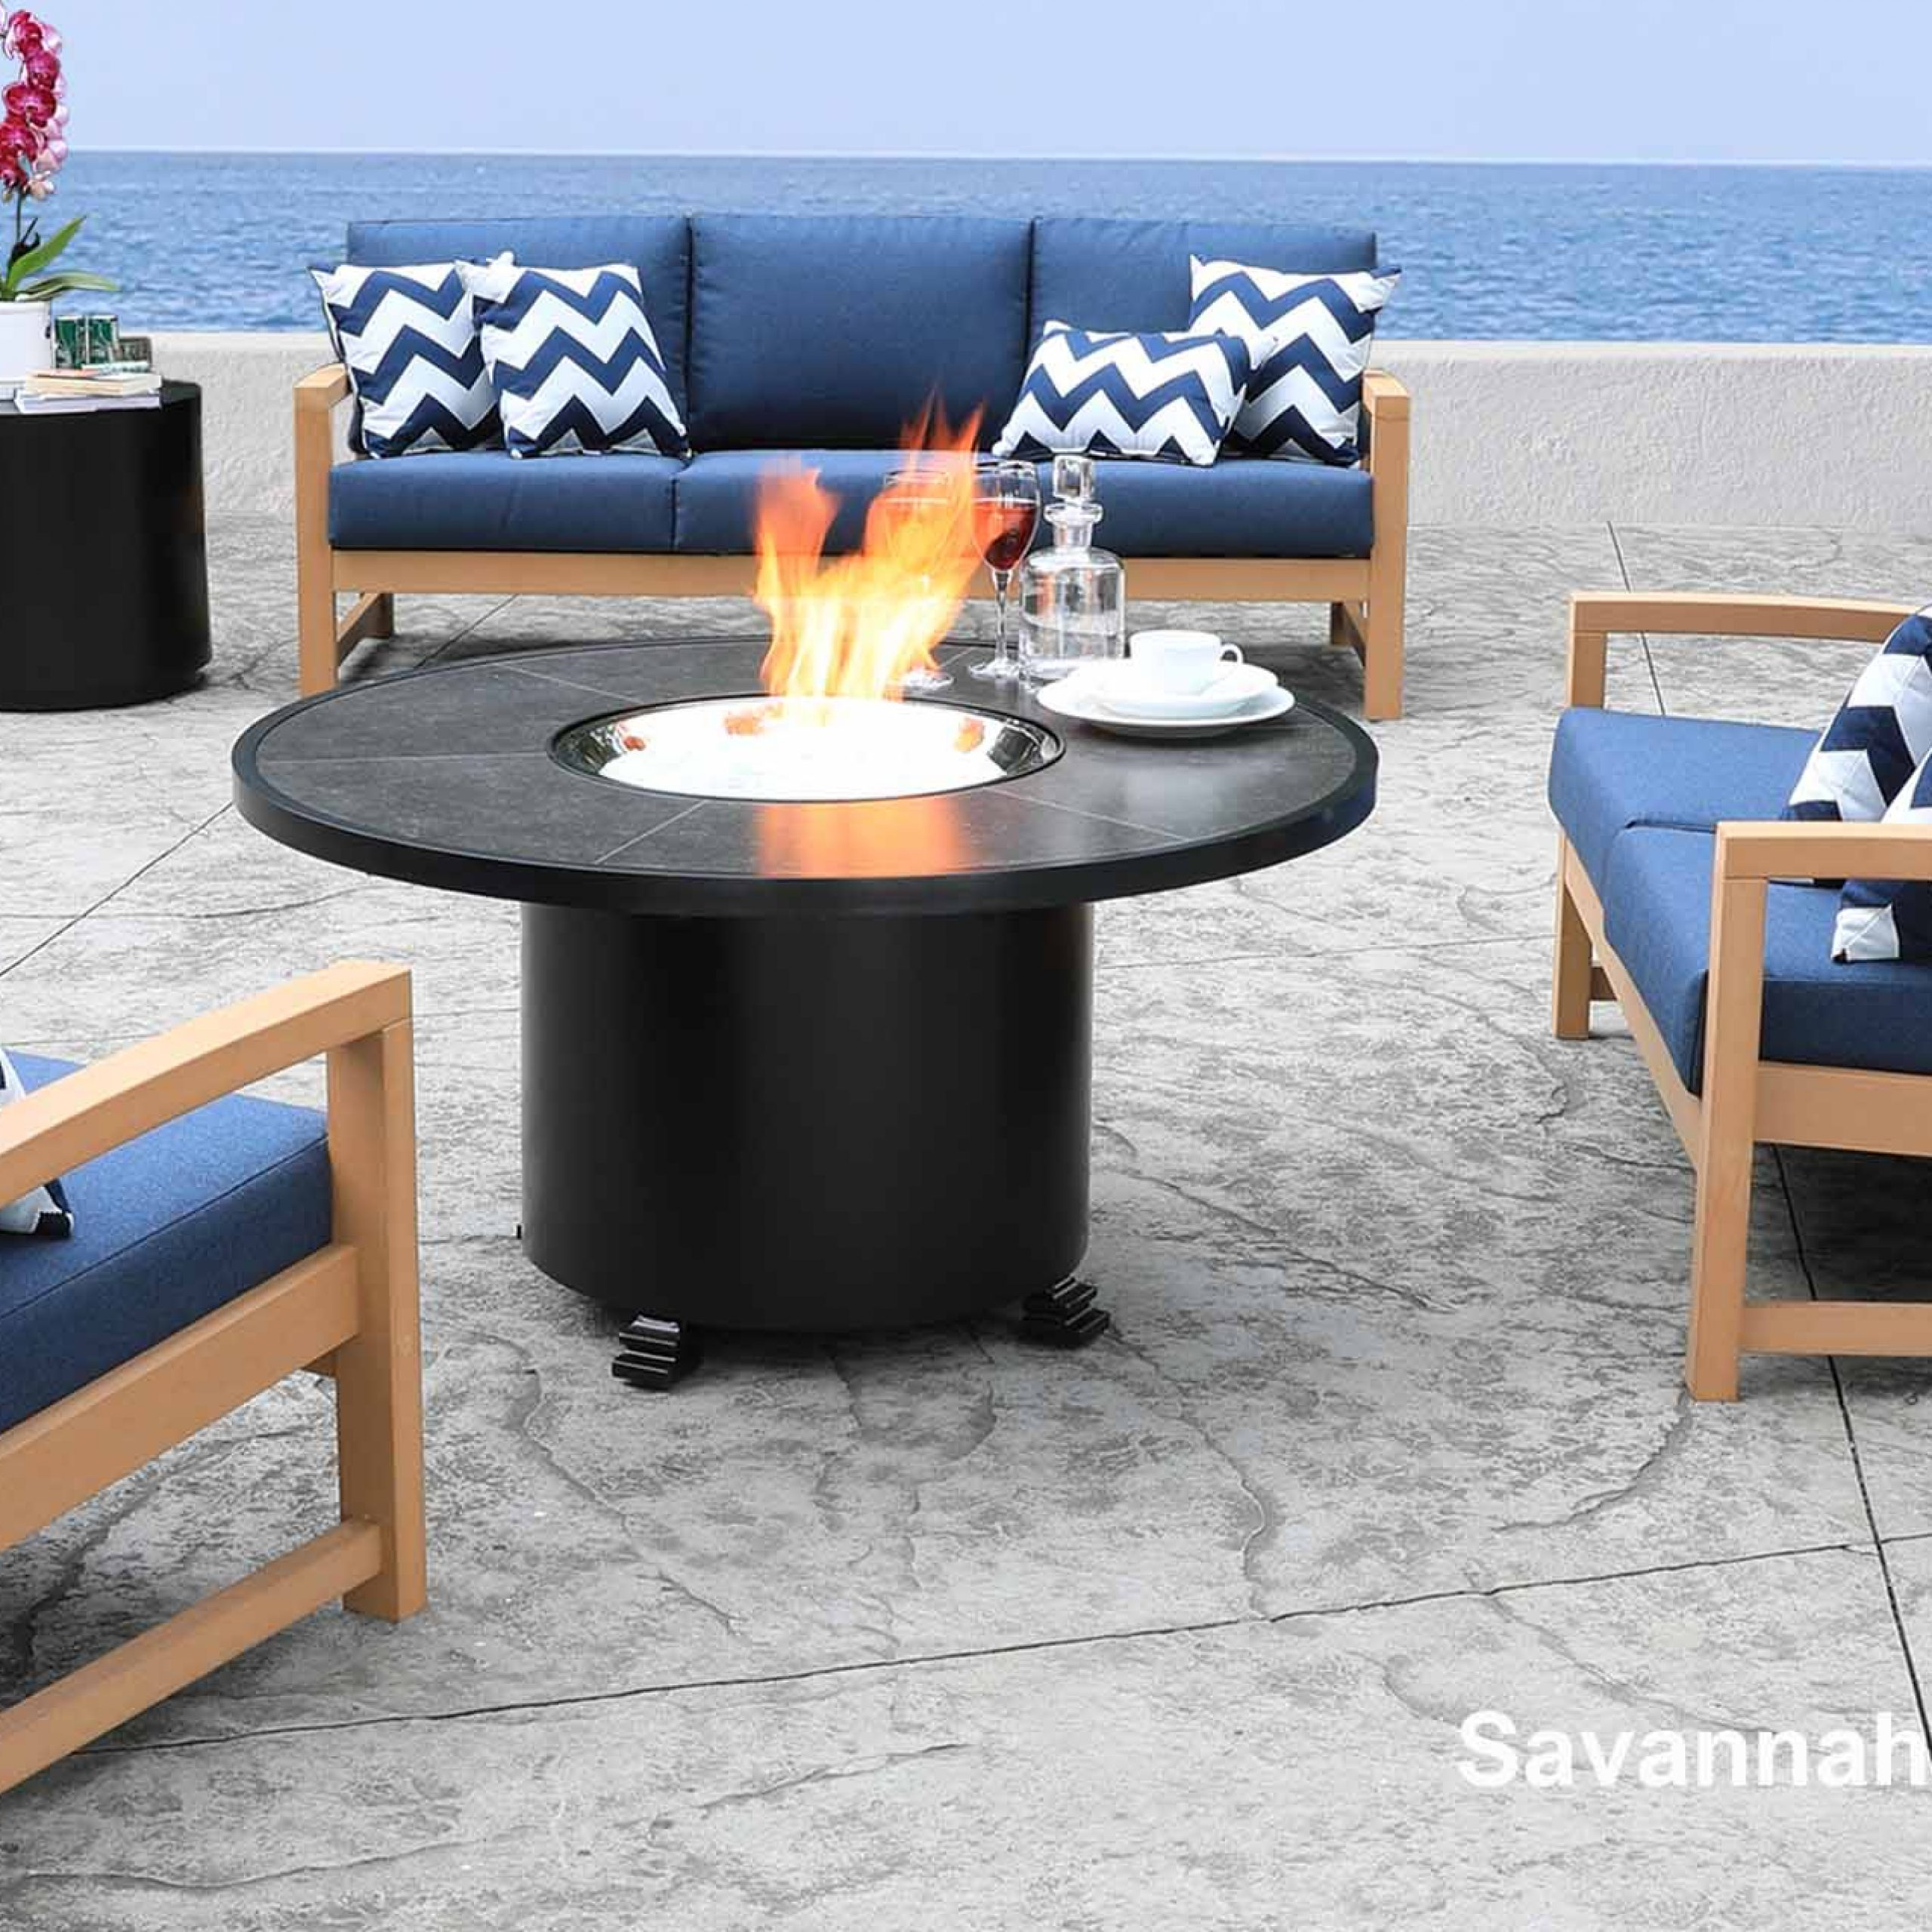 Shop Patio Furniture At Cabanacoast® Throughout Outdoor Wicker Plastic Half Moon Leaf Shape Porch Swings (View 8 of 25)